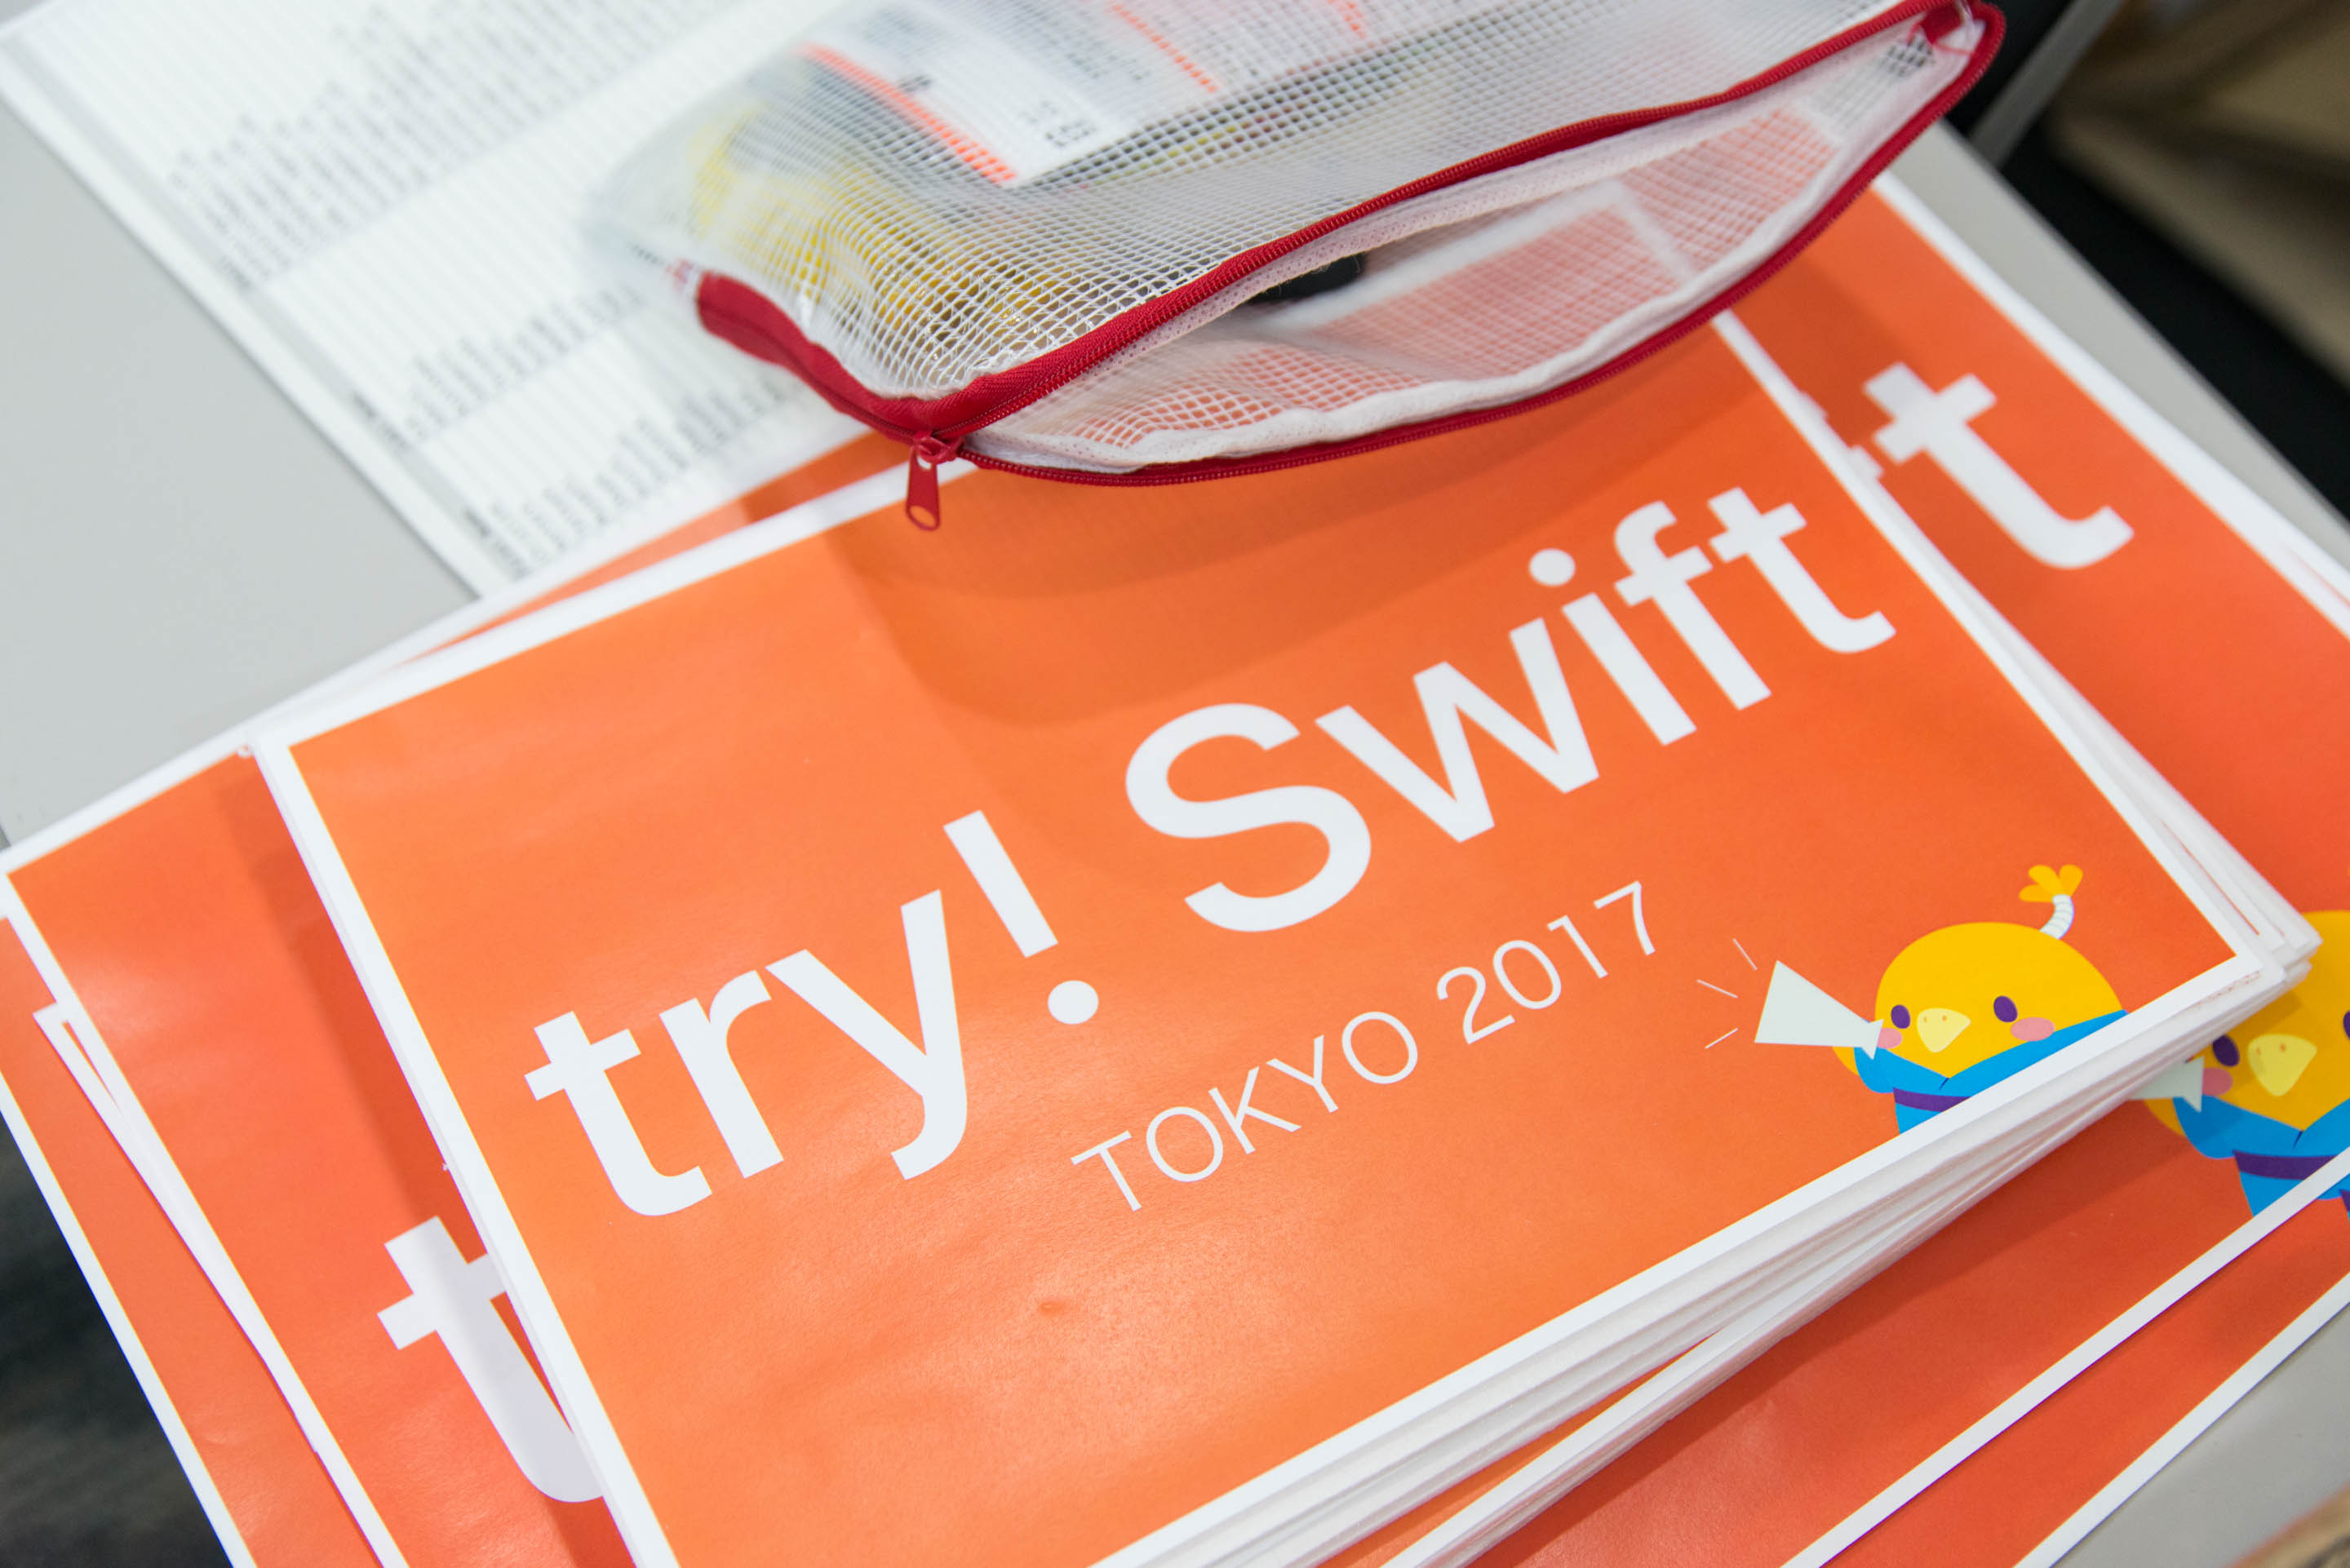 try! Swift Tokyo Conference Signs